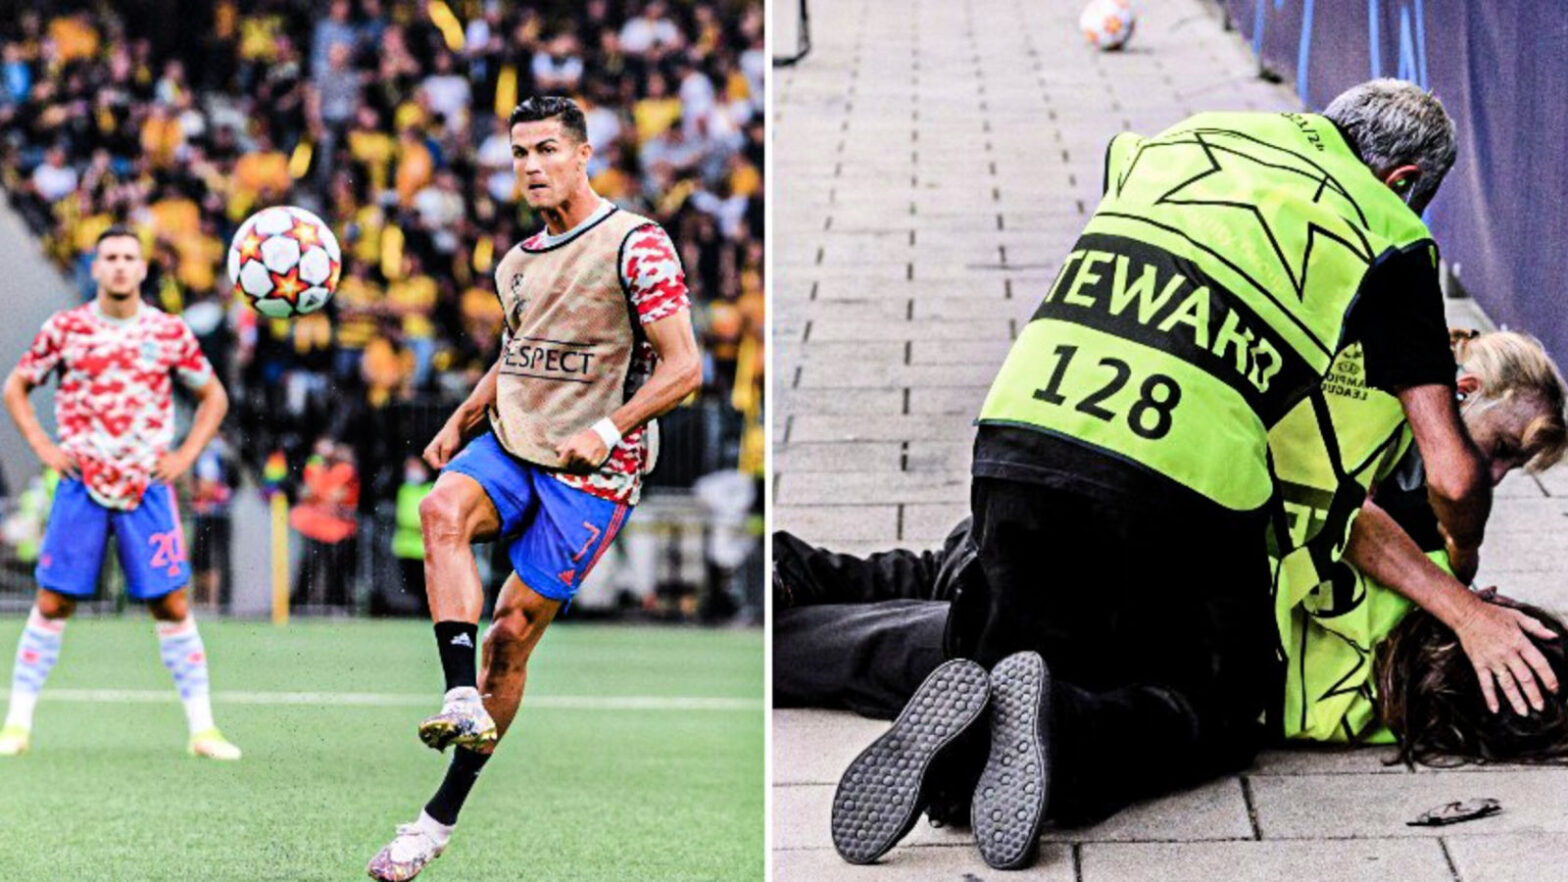 A steward got hit by a shot from Ronaldo in the warm-up, and Ronaldo gave her a shirt to make up for it